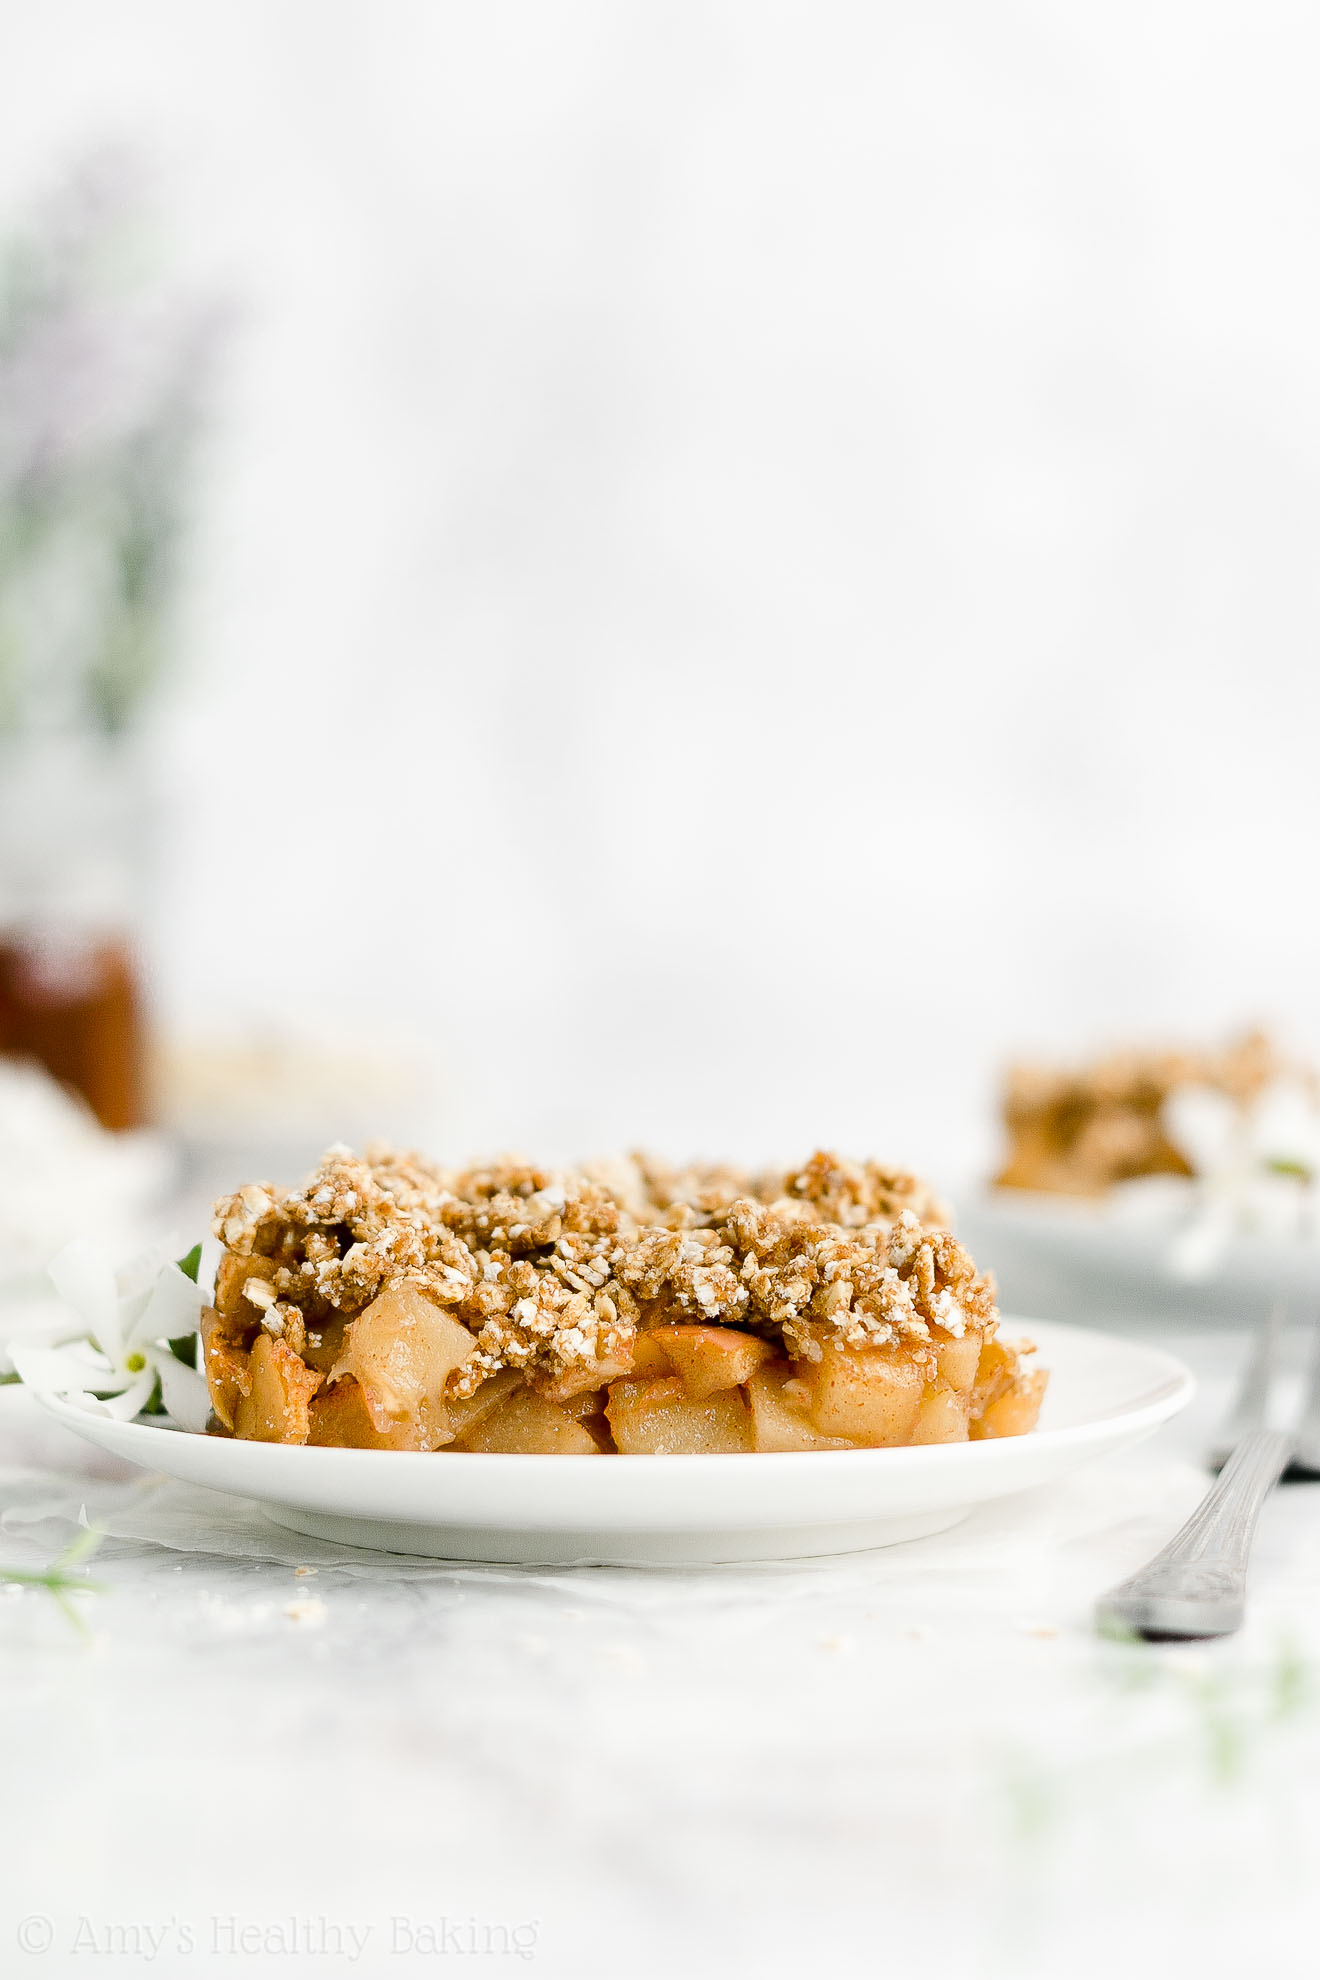 Best Easy Healthy Small Batch Egg Free No Sugar Low Calorie Baked Apple Crisp